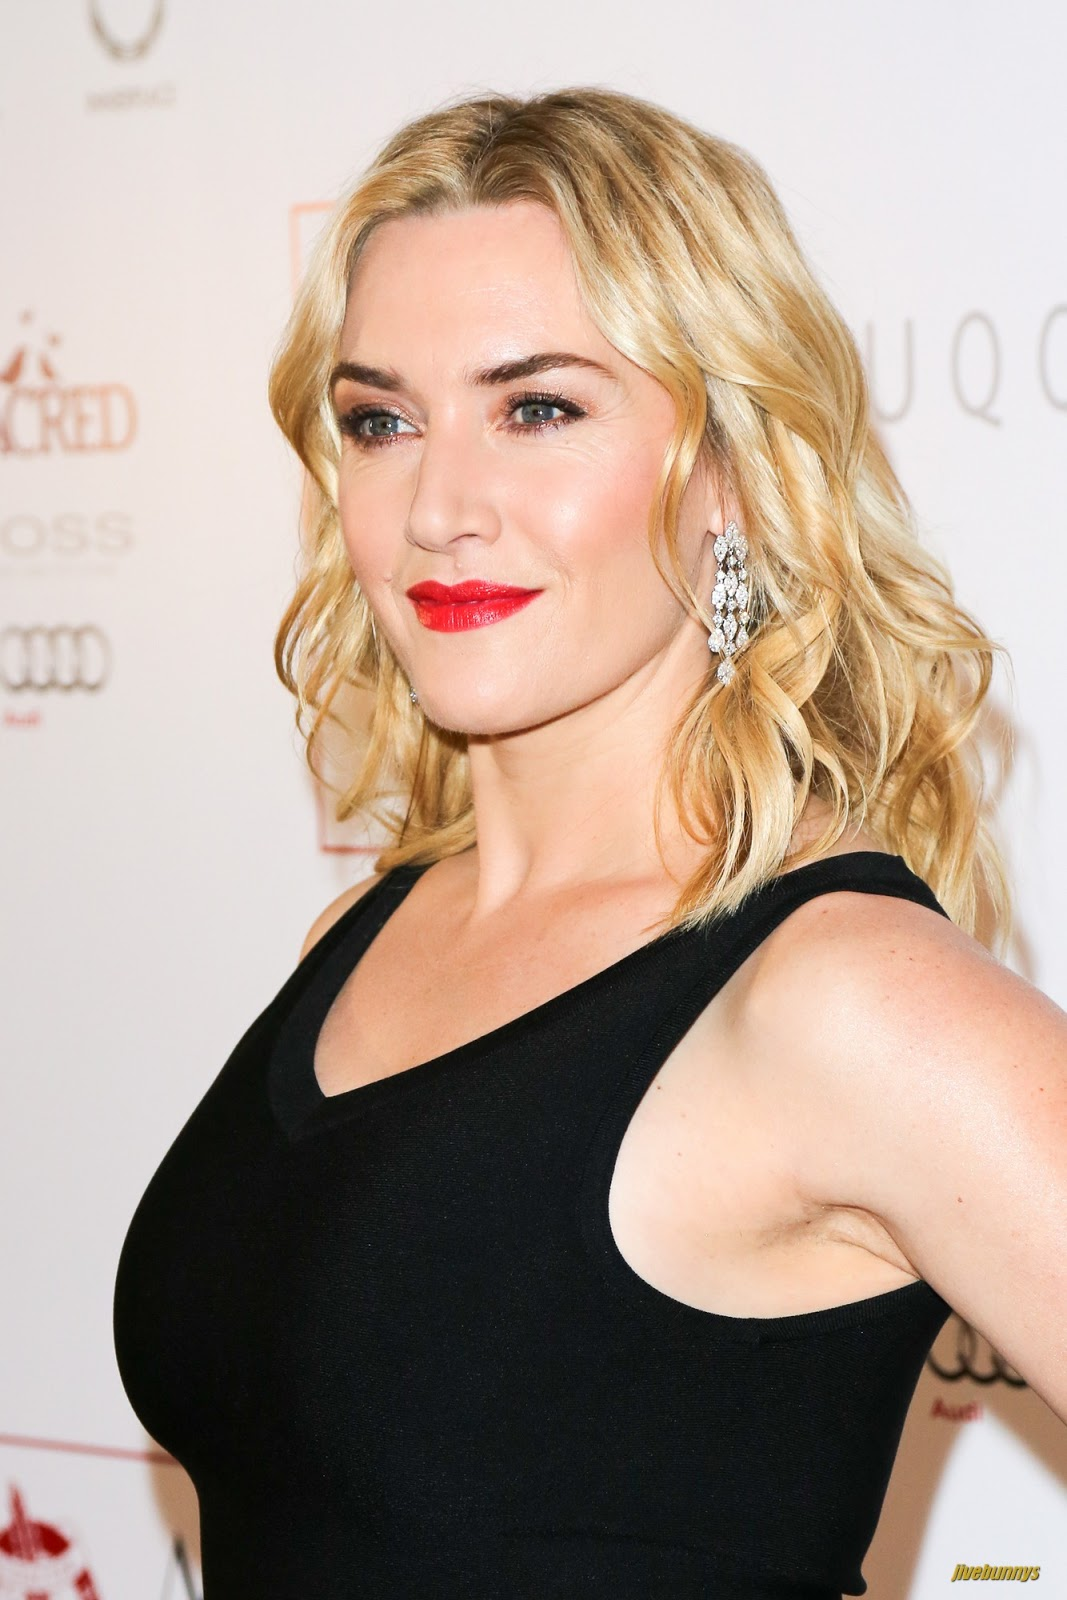 Jivebunnys Female Celebrity Picture Gallery: Kate Winslet ... Kate Winslet Movies